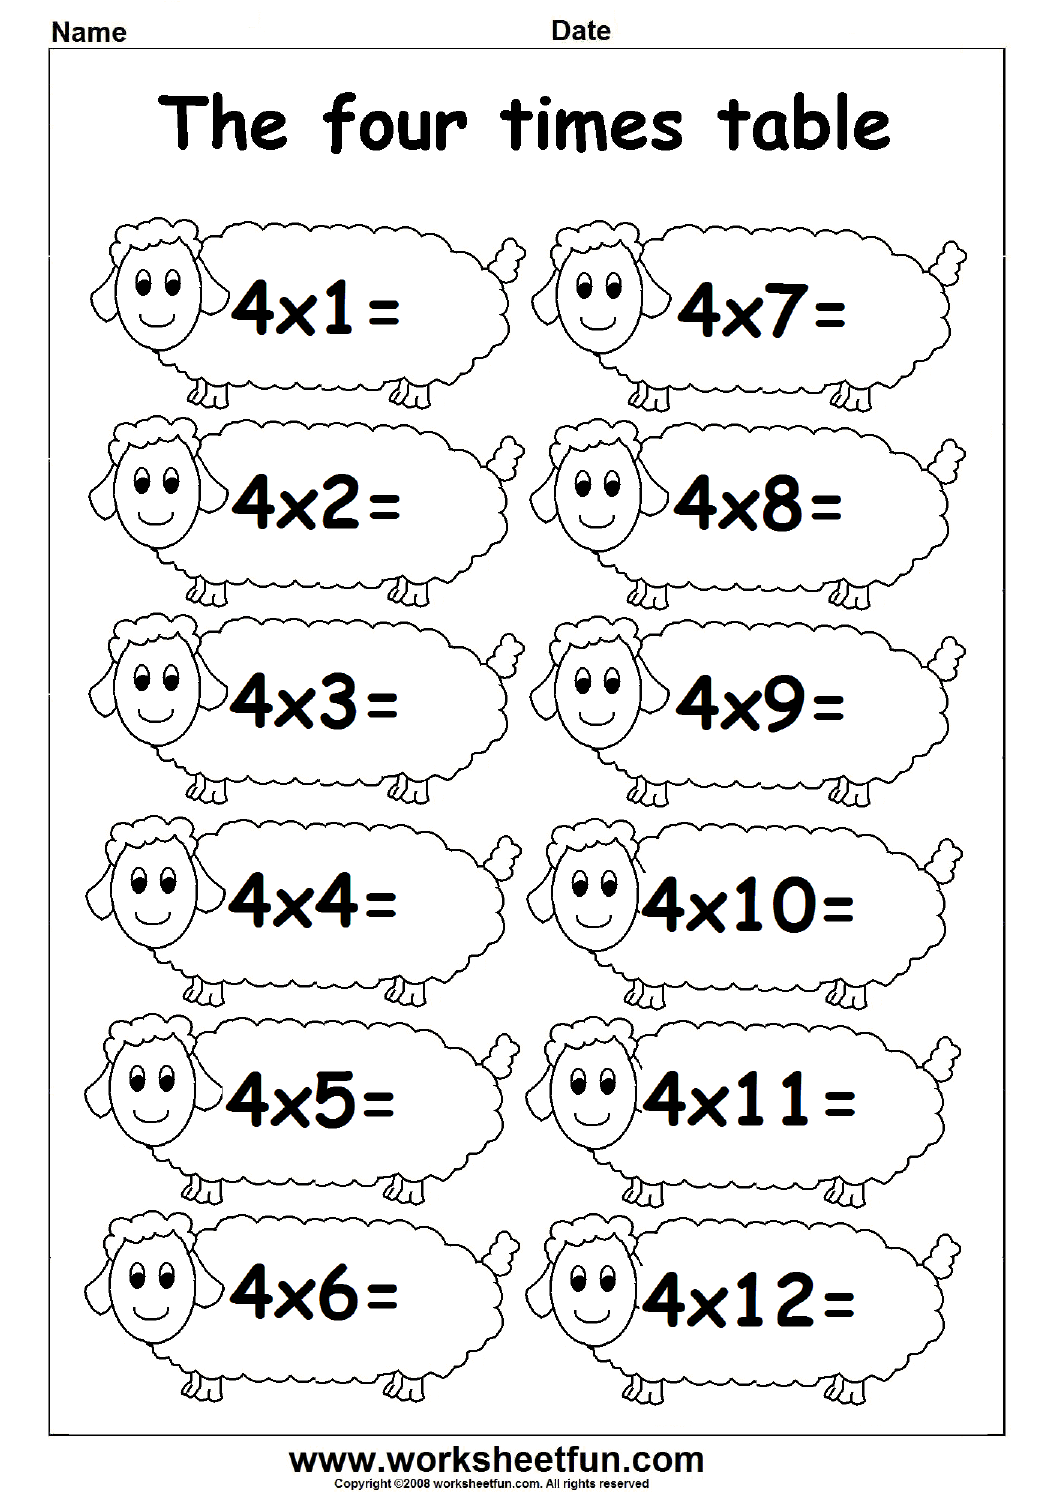 Times Table – 4 Times Table / FREE Printable Worksheets – Worksheetfun